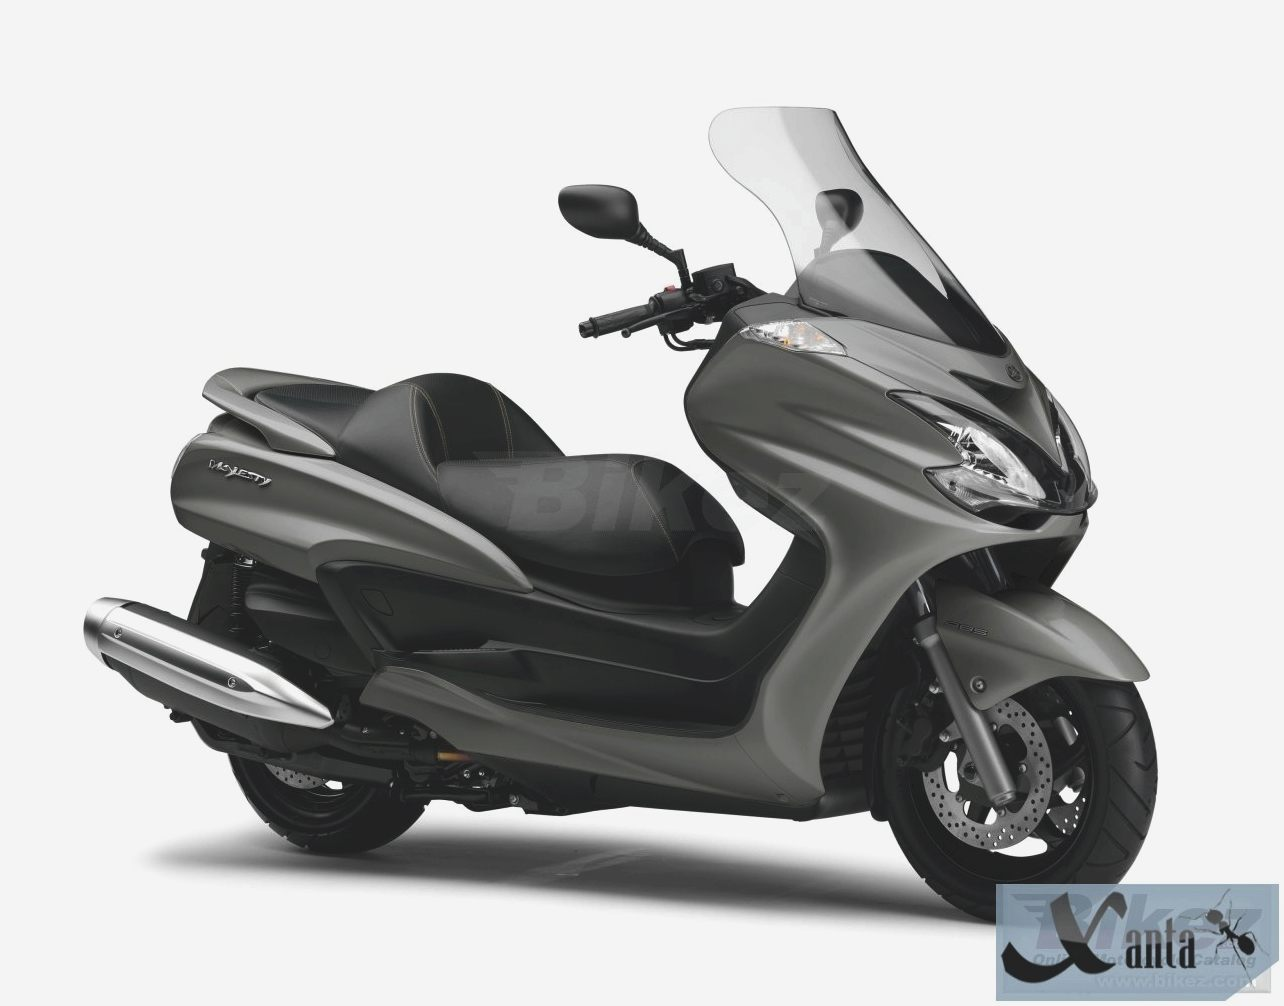 Yamaha Majesty 400 ABS 2008 wallpapers #136157